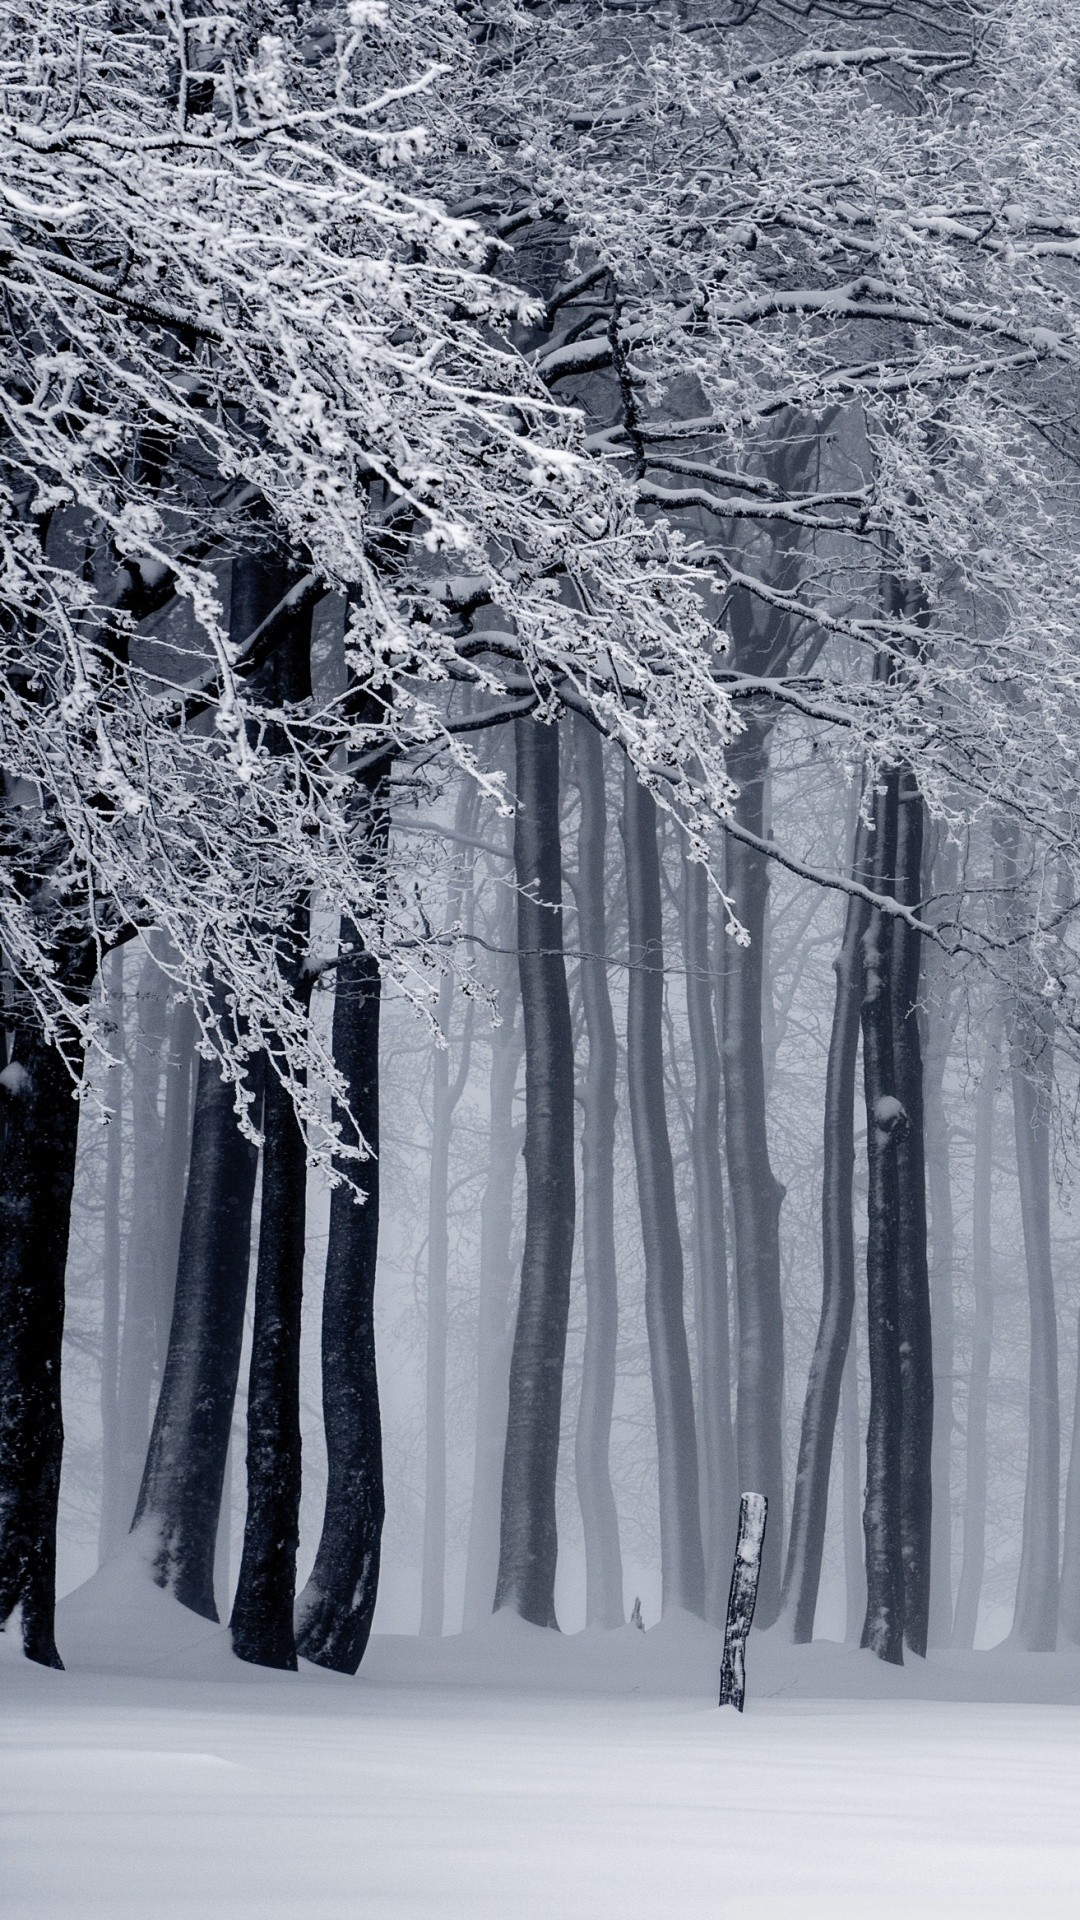 Free Snowy Forest, Winter phone wallpaper by dreshonwilliams